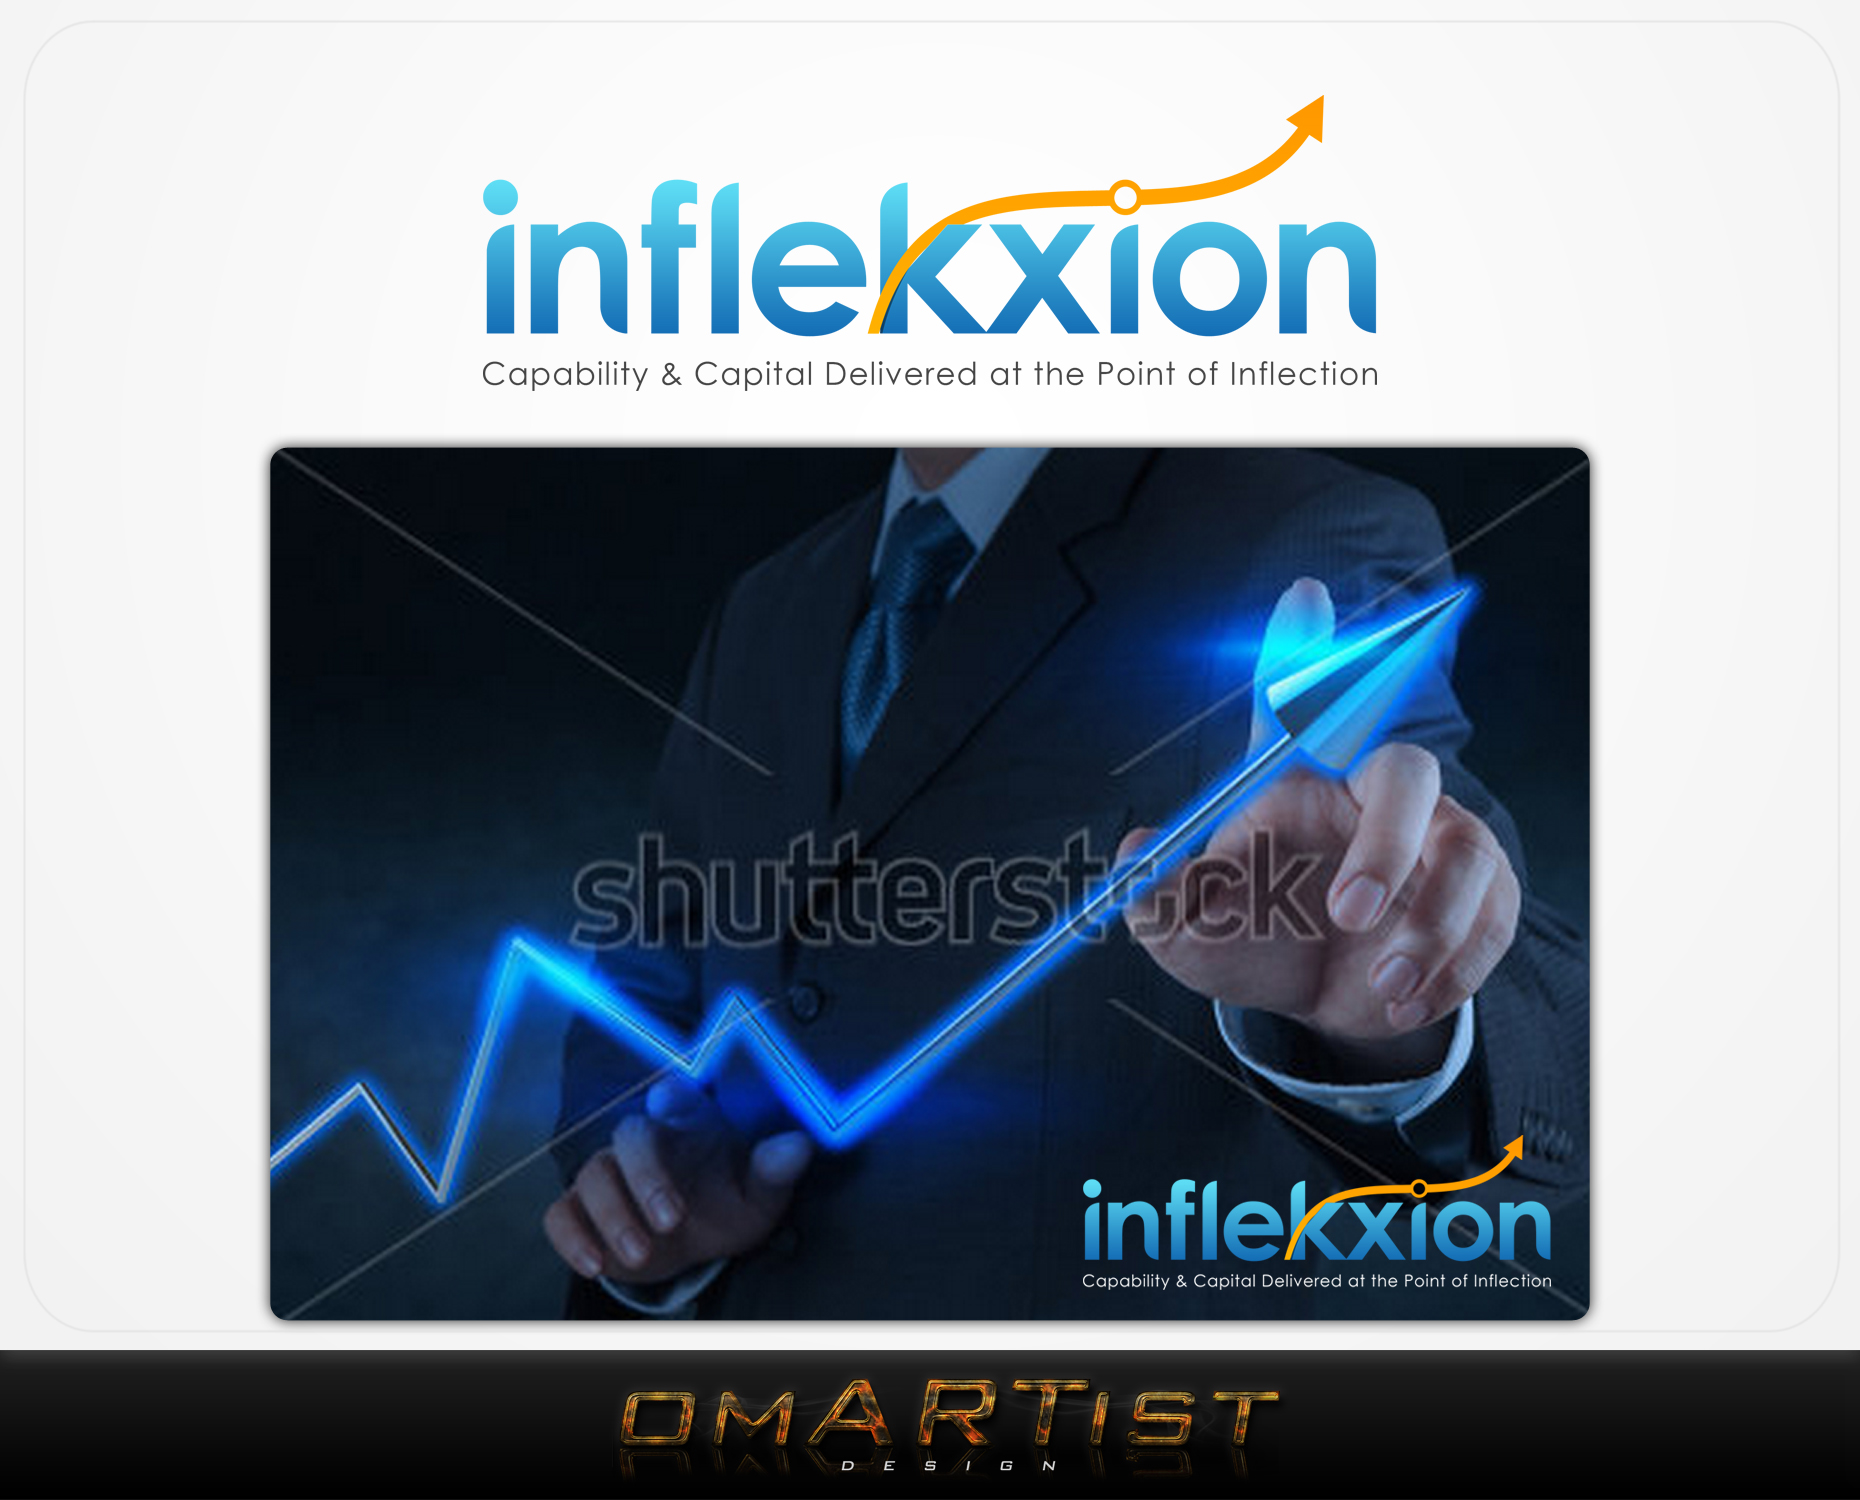 Logo Design by omARTist - Entry No. 112 in the Logo Design Contest Professional Logo Design for Inflekxion.